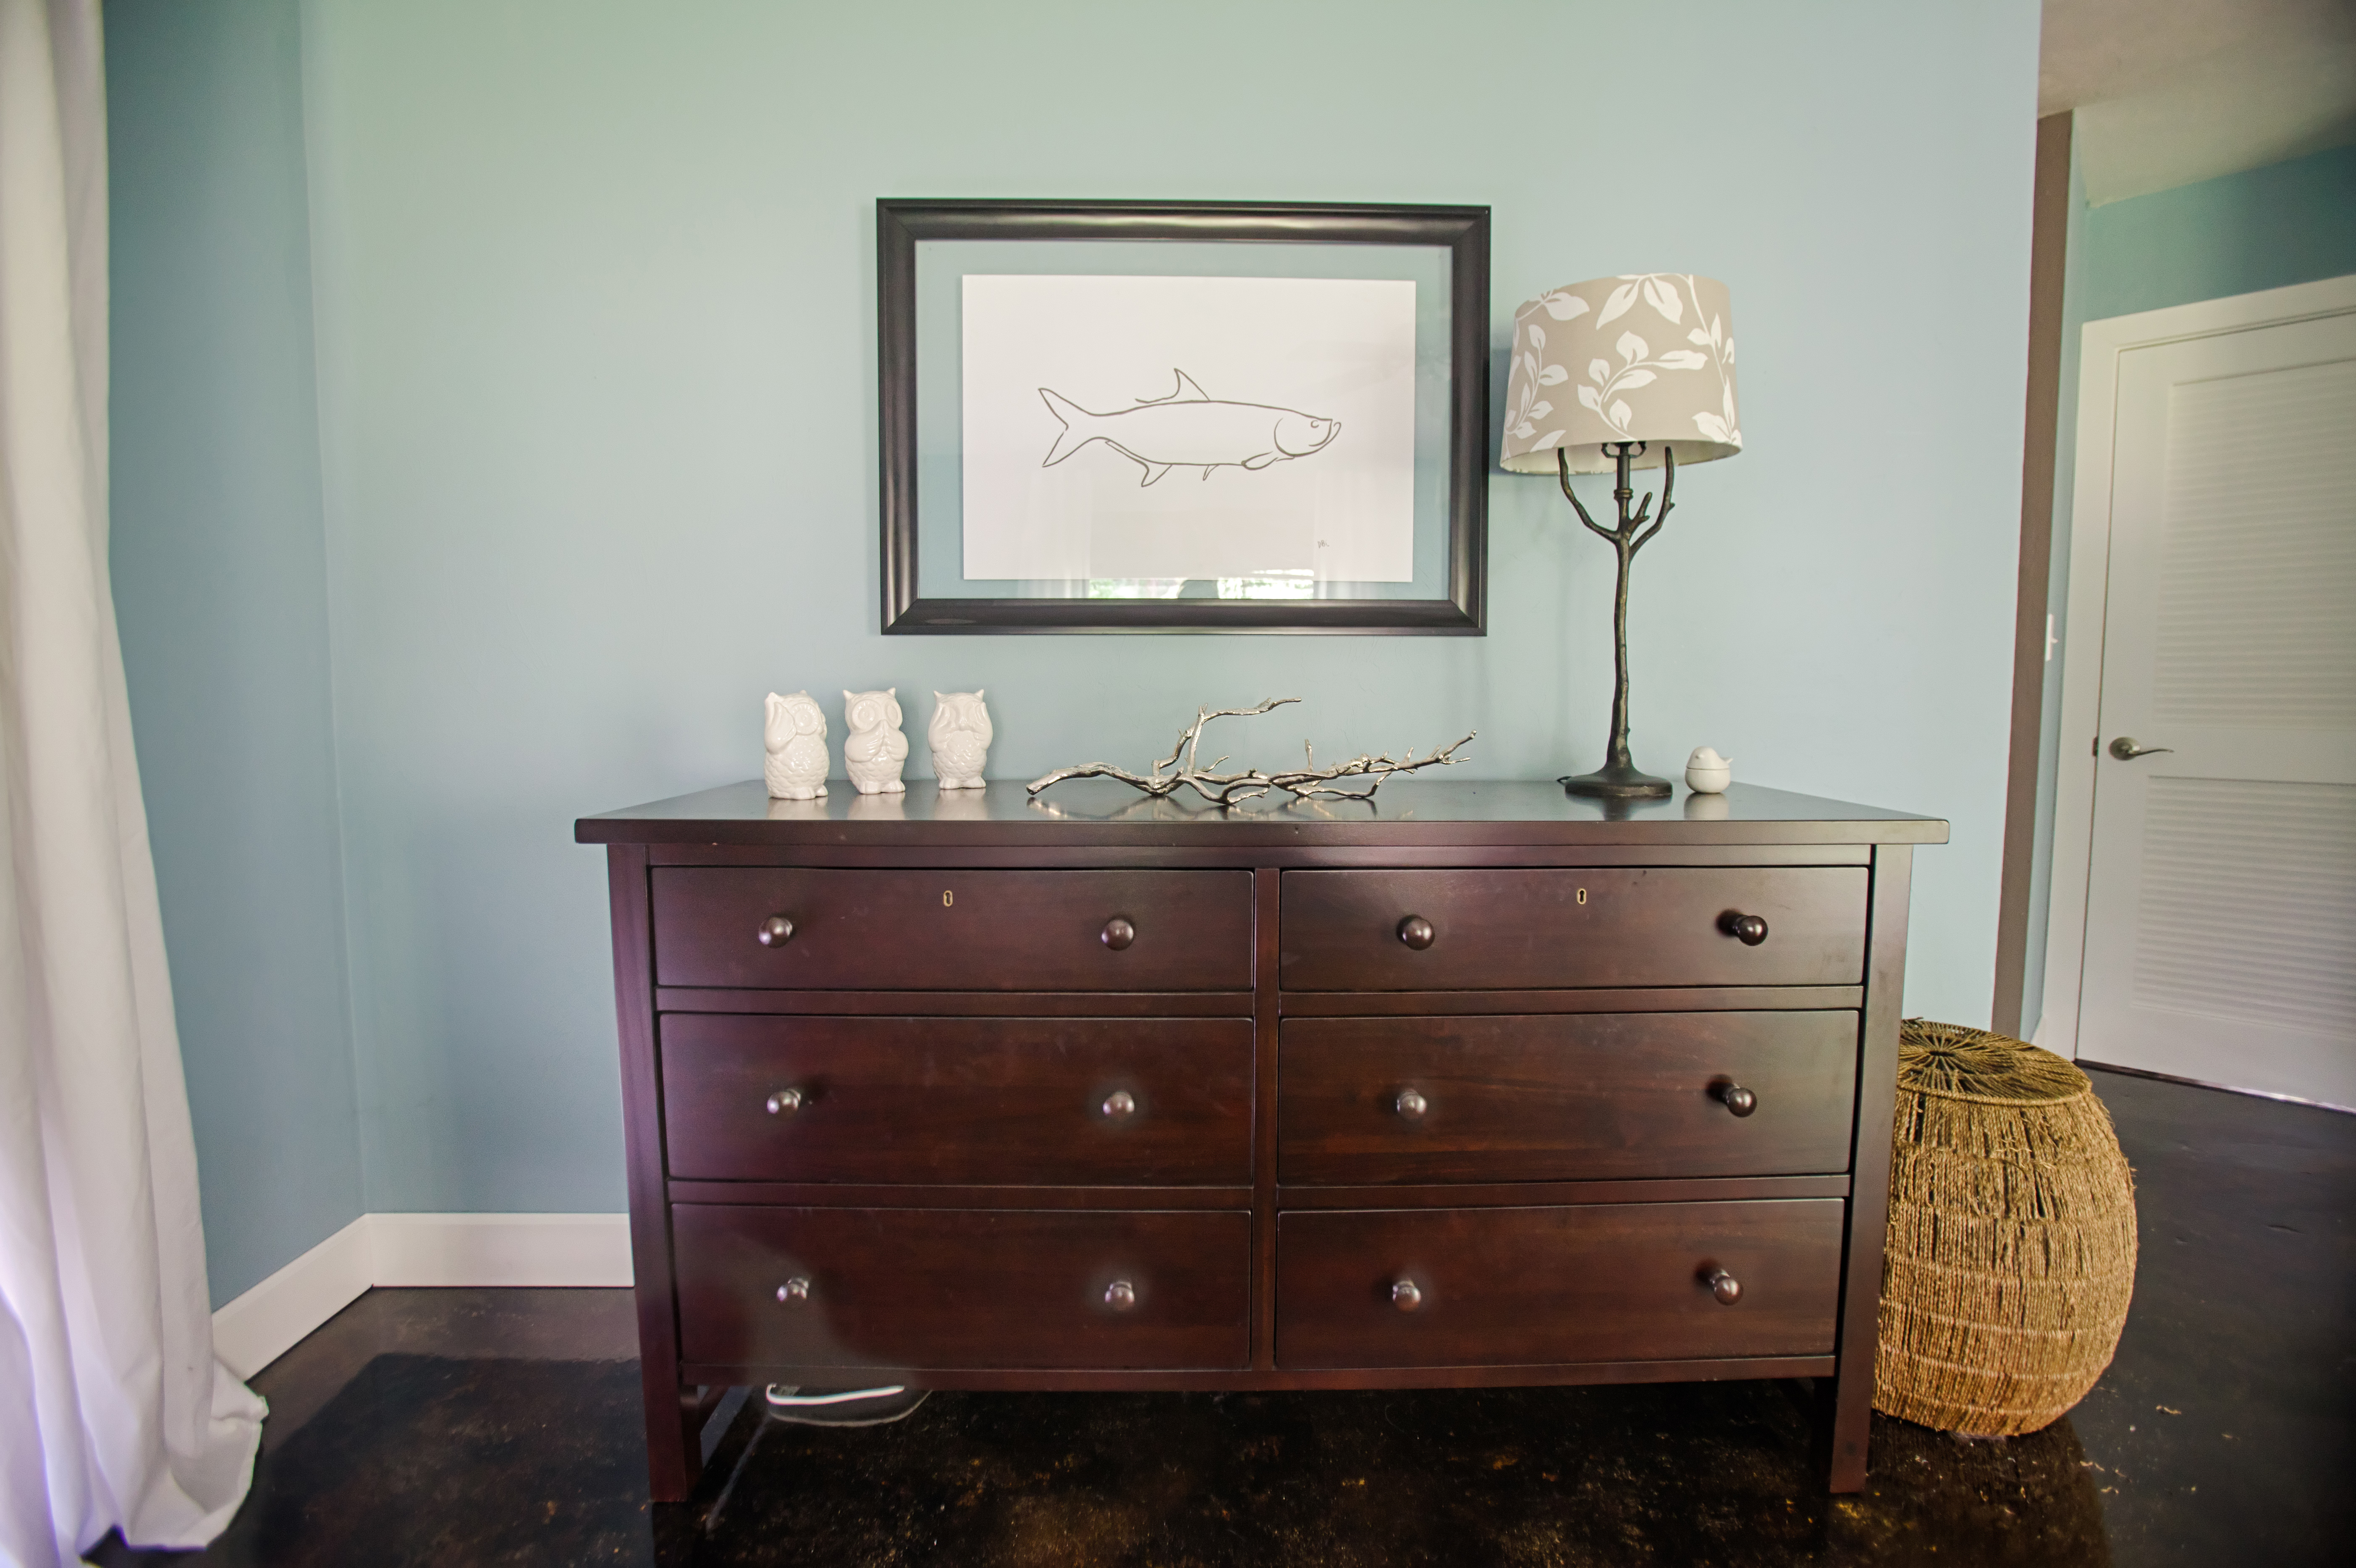 Secondhand furniture and homemade art make up most of the home decor